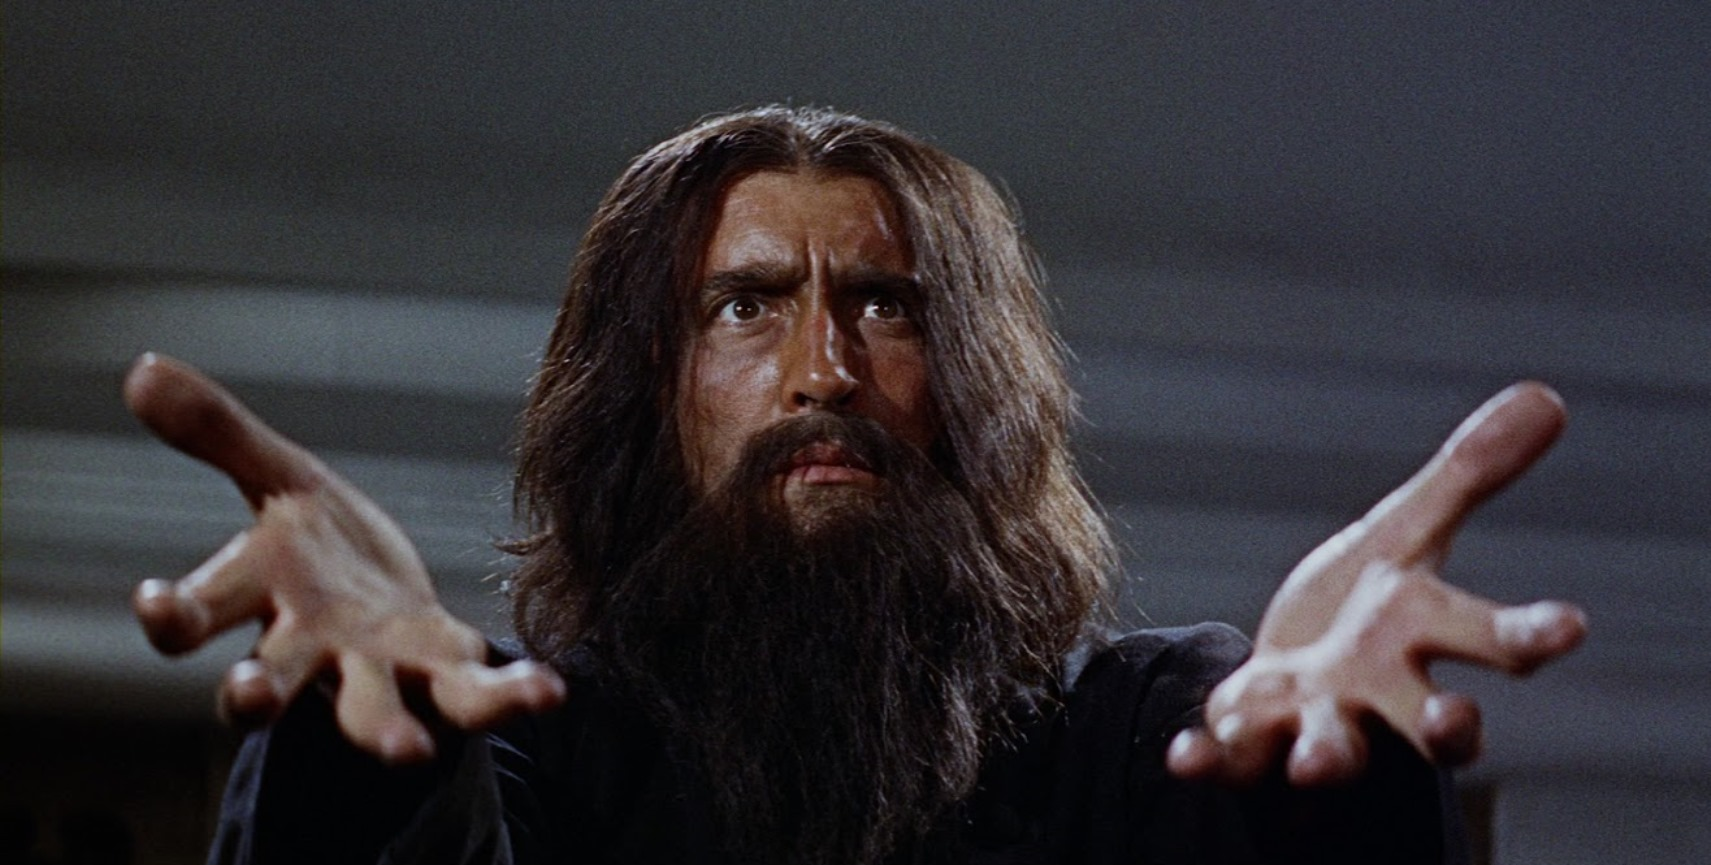 Christopher Lee as Rasputin the Mad Monk (1966)